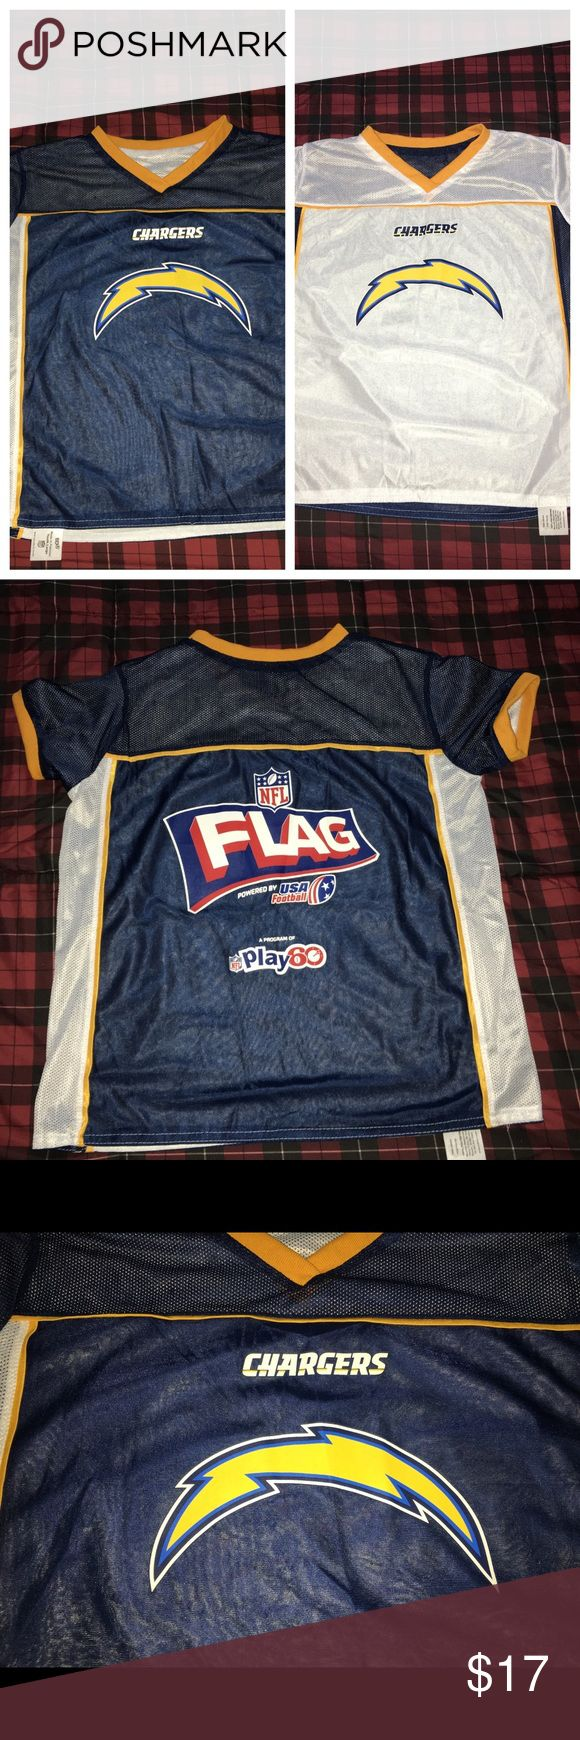 San Diego LA chargers flag football jersey SZ: L Thank you for viewing my listing, for sale is a youth, NFL flag play 60, San Diego/Los Angeles chargers reversible jersey.  Sz: L   If you have any questions or would like additional photos please feel free to ask. PLAY 60 Shirts & Tops